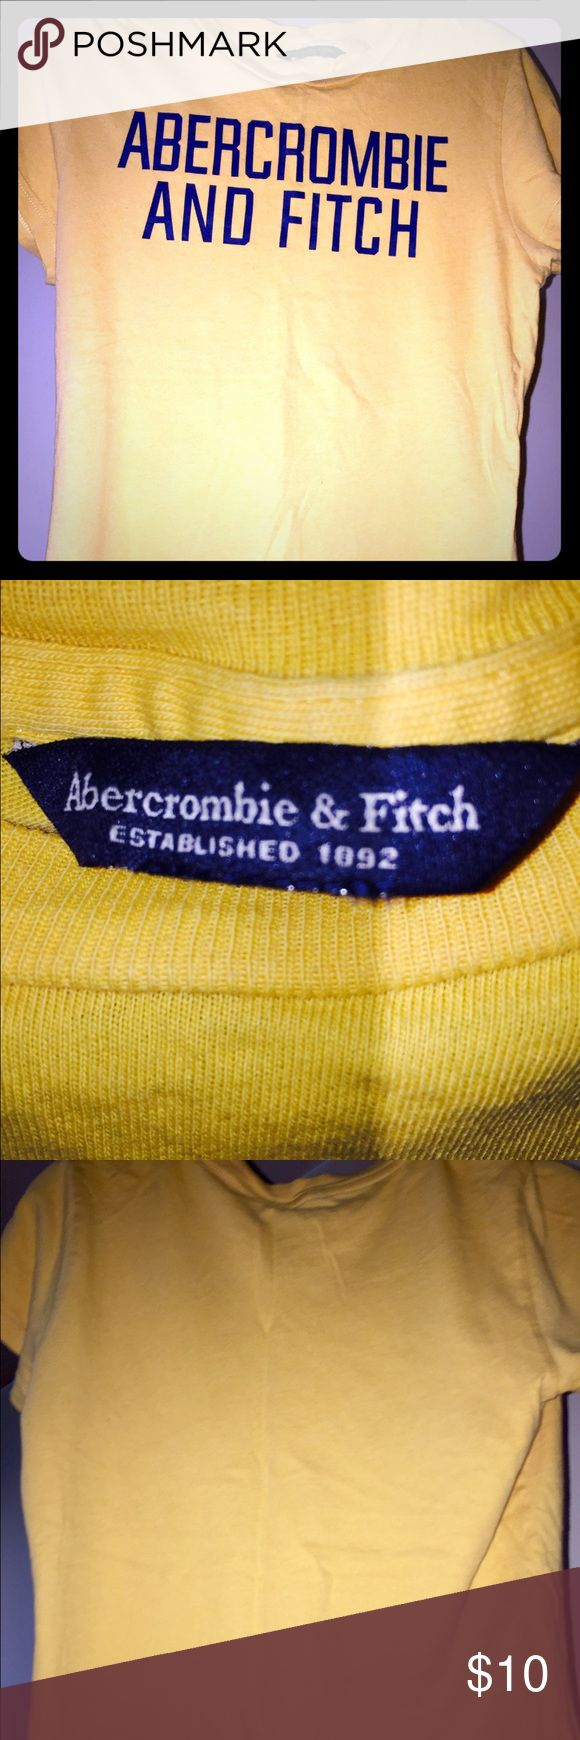 Abercrombie and Fitch Yellow T-shirt Abercrombie and Fitch yellow T-shirt size medium. Condition is Brand New Worn once. Nothing wrong with it. Great dark yellow color with blue writing. Abercrombie & Fitch Tops Tees - Short Sleeve